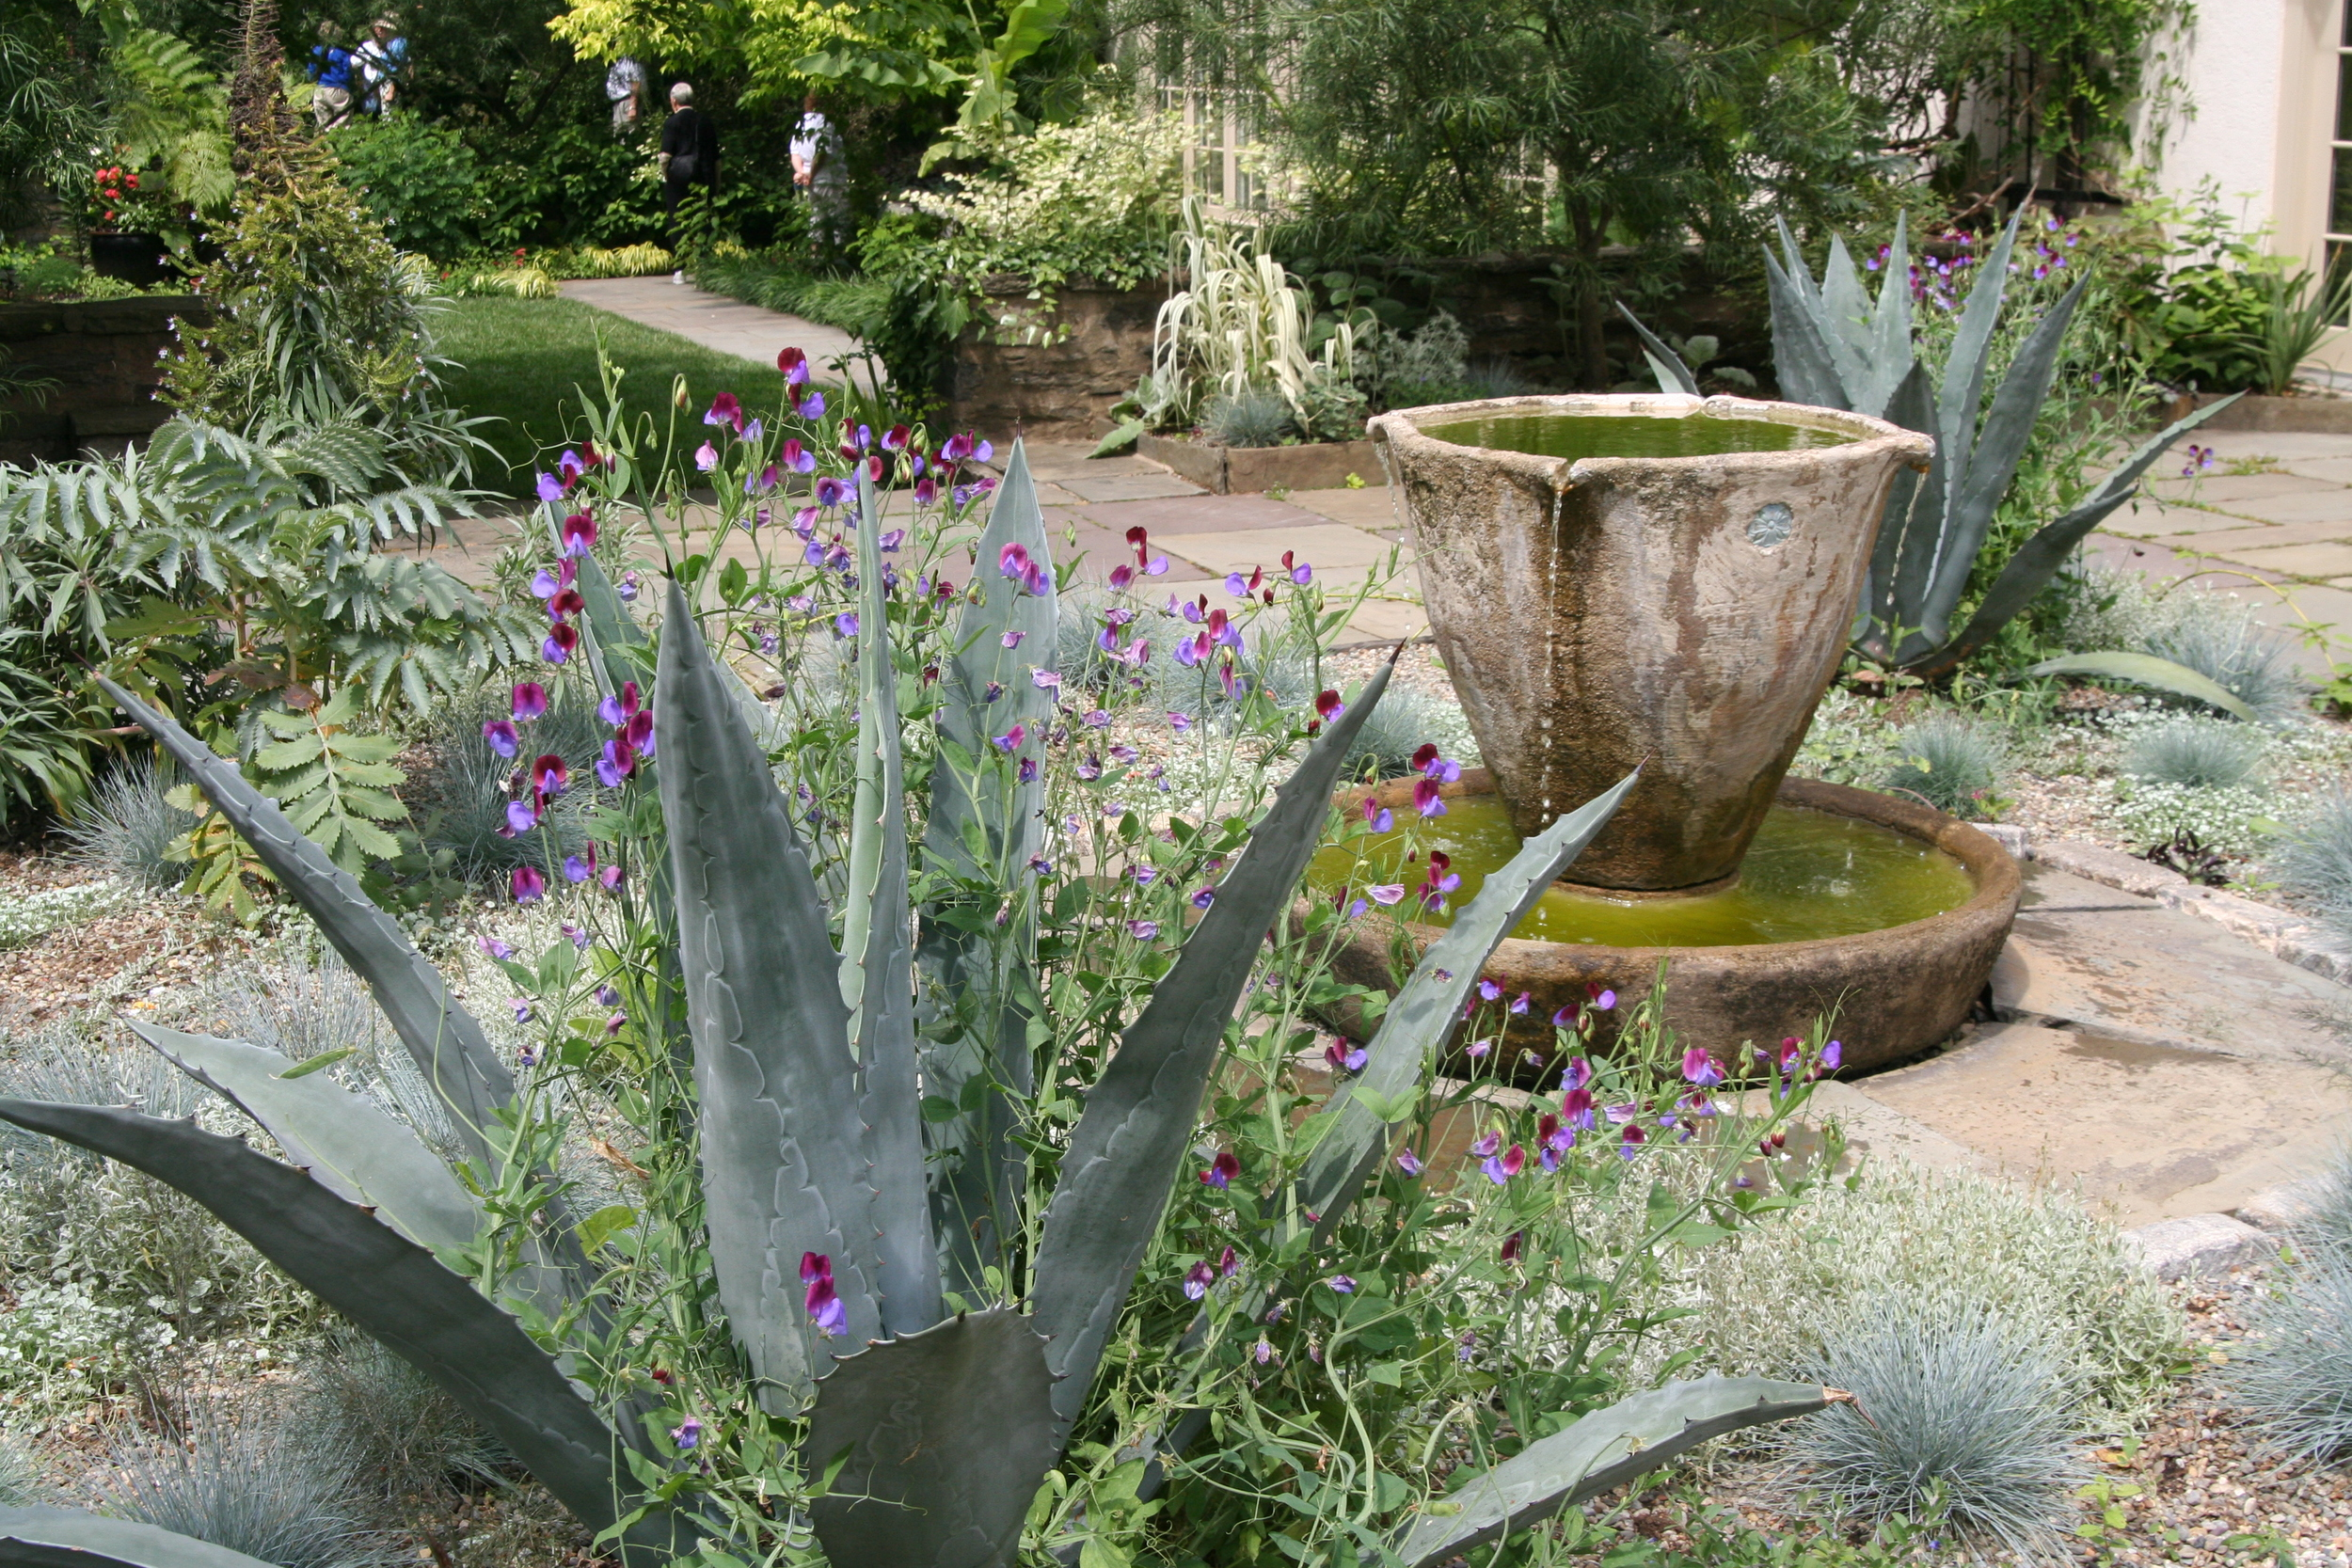 The blue-green, spiky Agave americana is not hardy here, but it thrives in pots that can be brought indoors and out. (photo taken at Chanticleer)